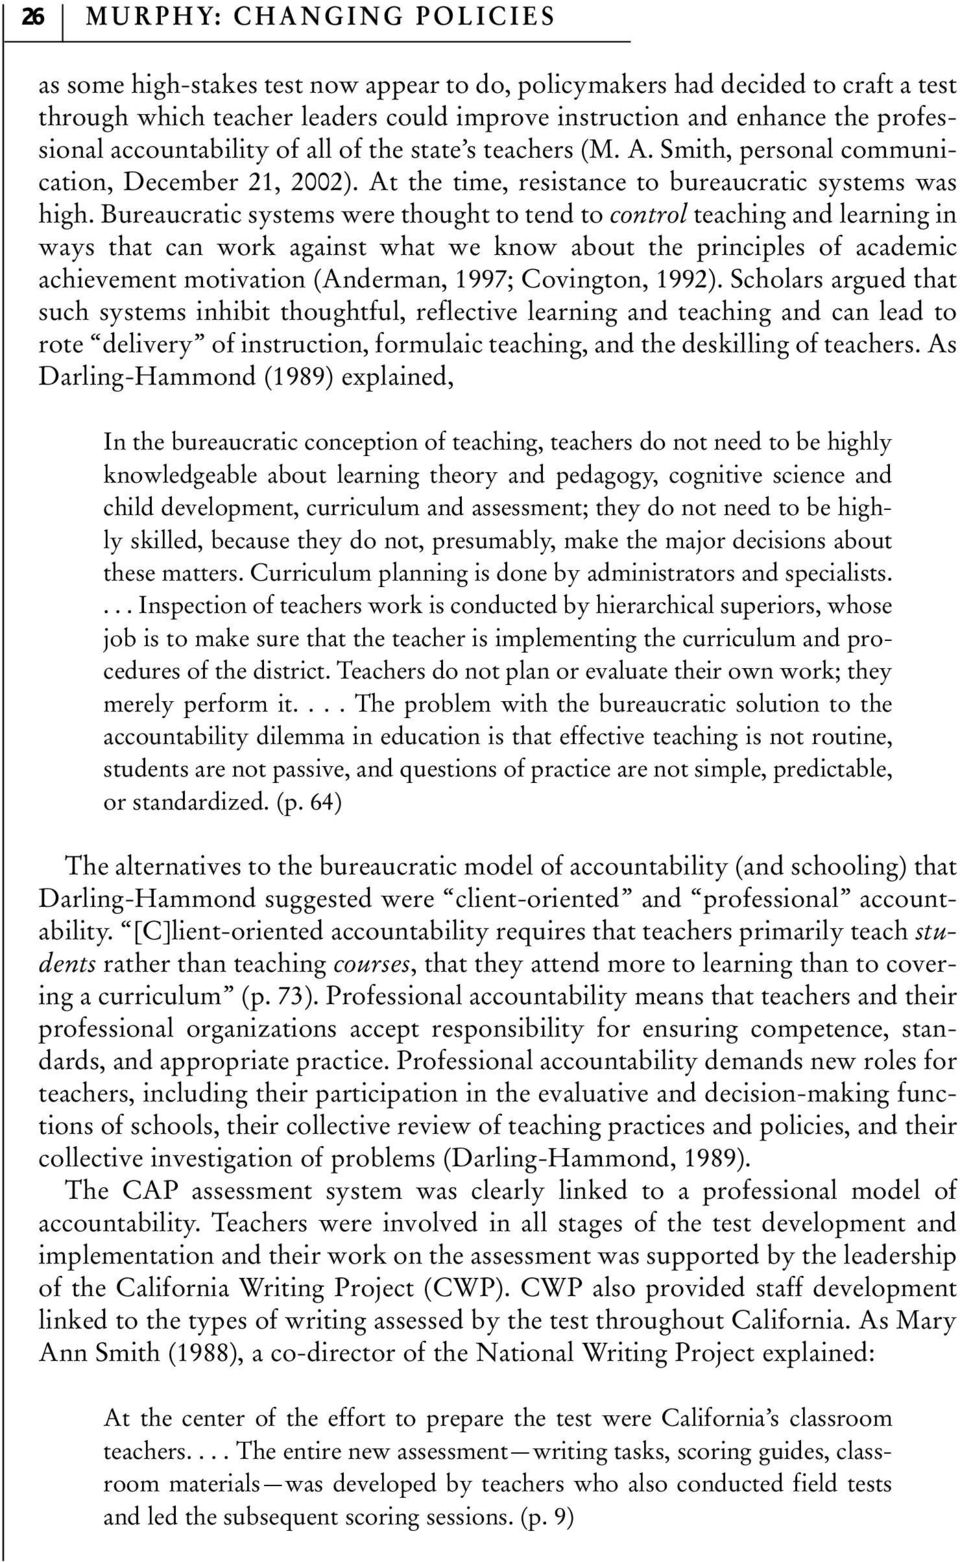 Bureaucratic systems were thought to tend to control teaching and learning in ways that can work against what we know about the principles of academic achievement motivation (Anderman, 1997;